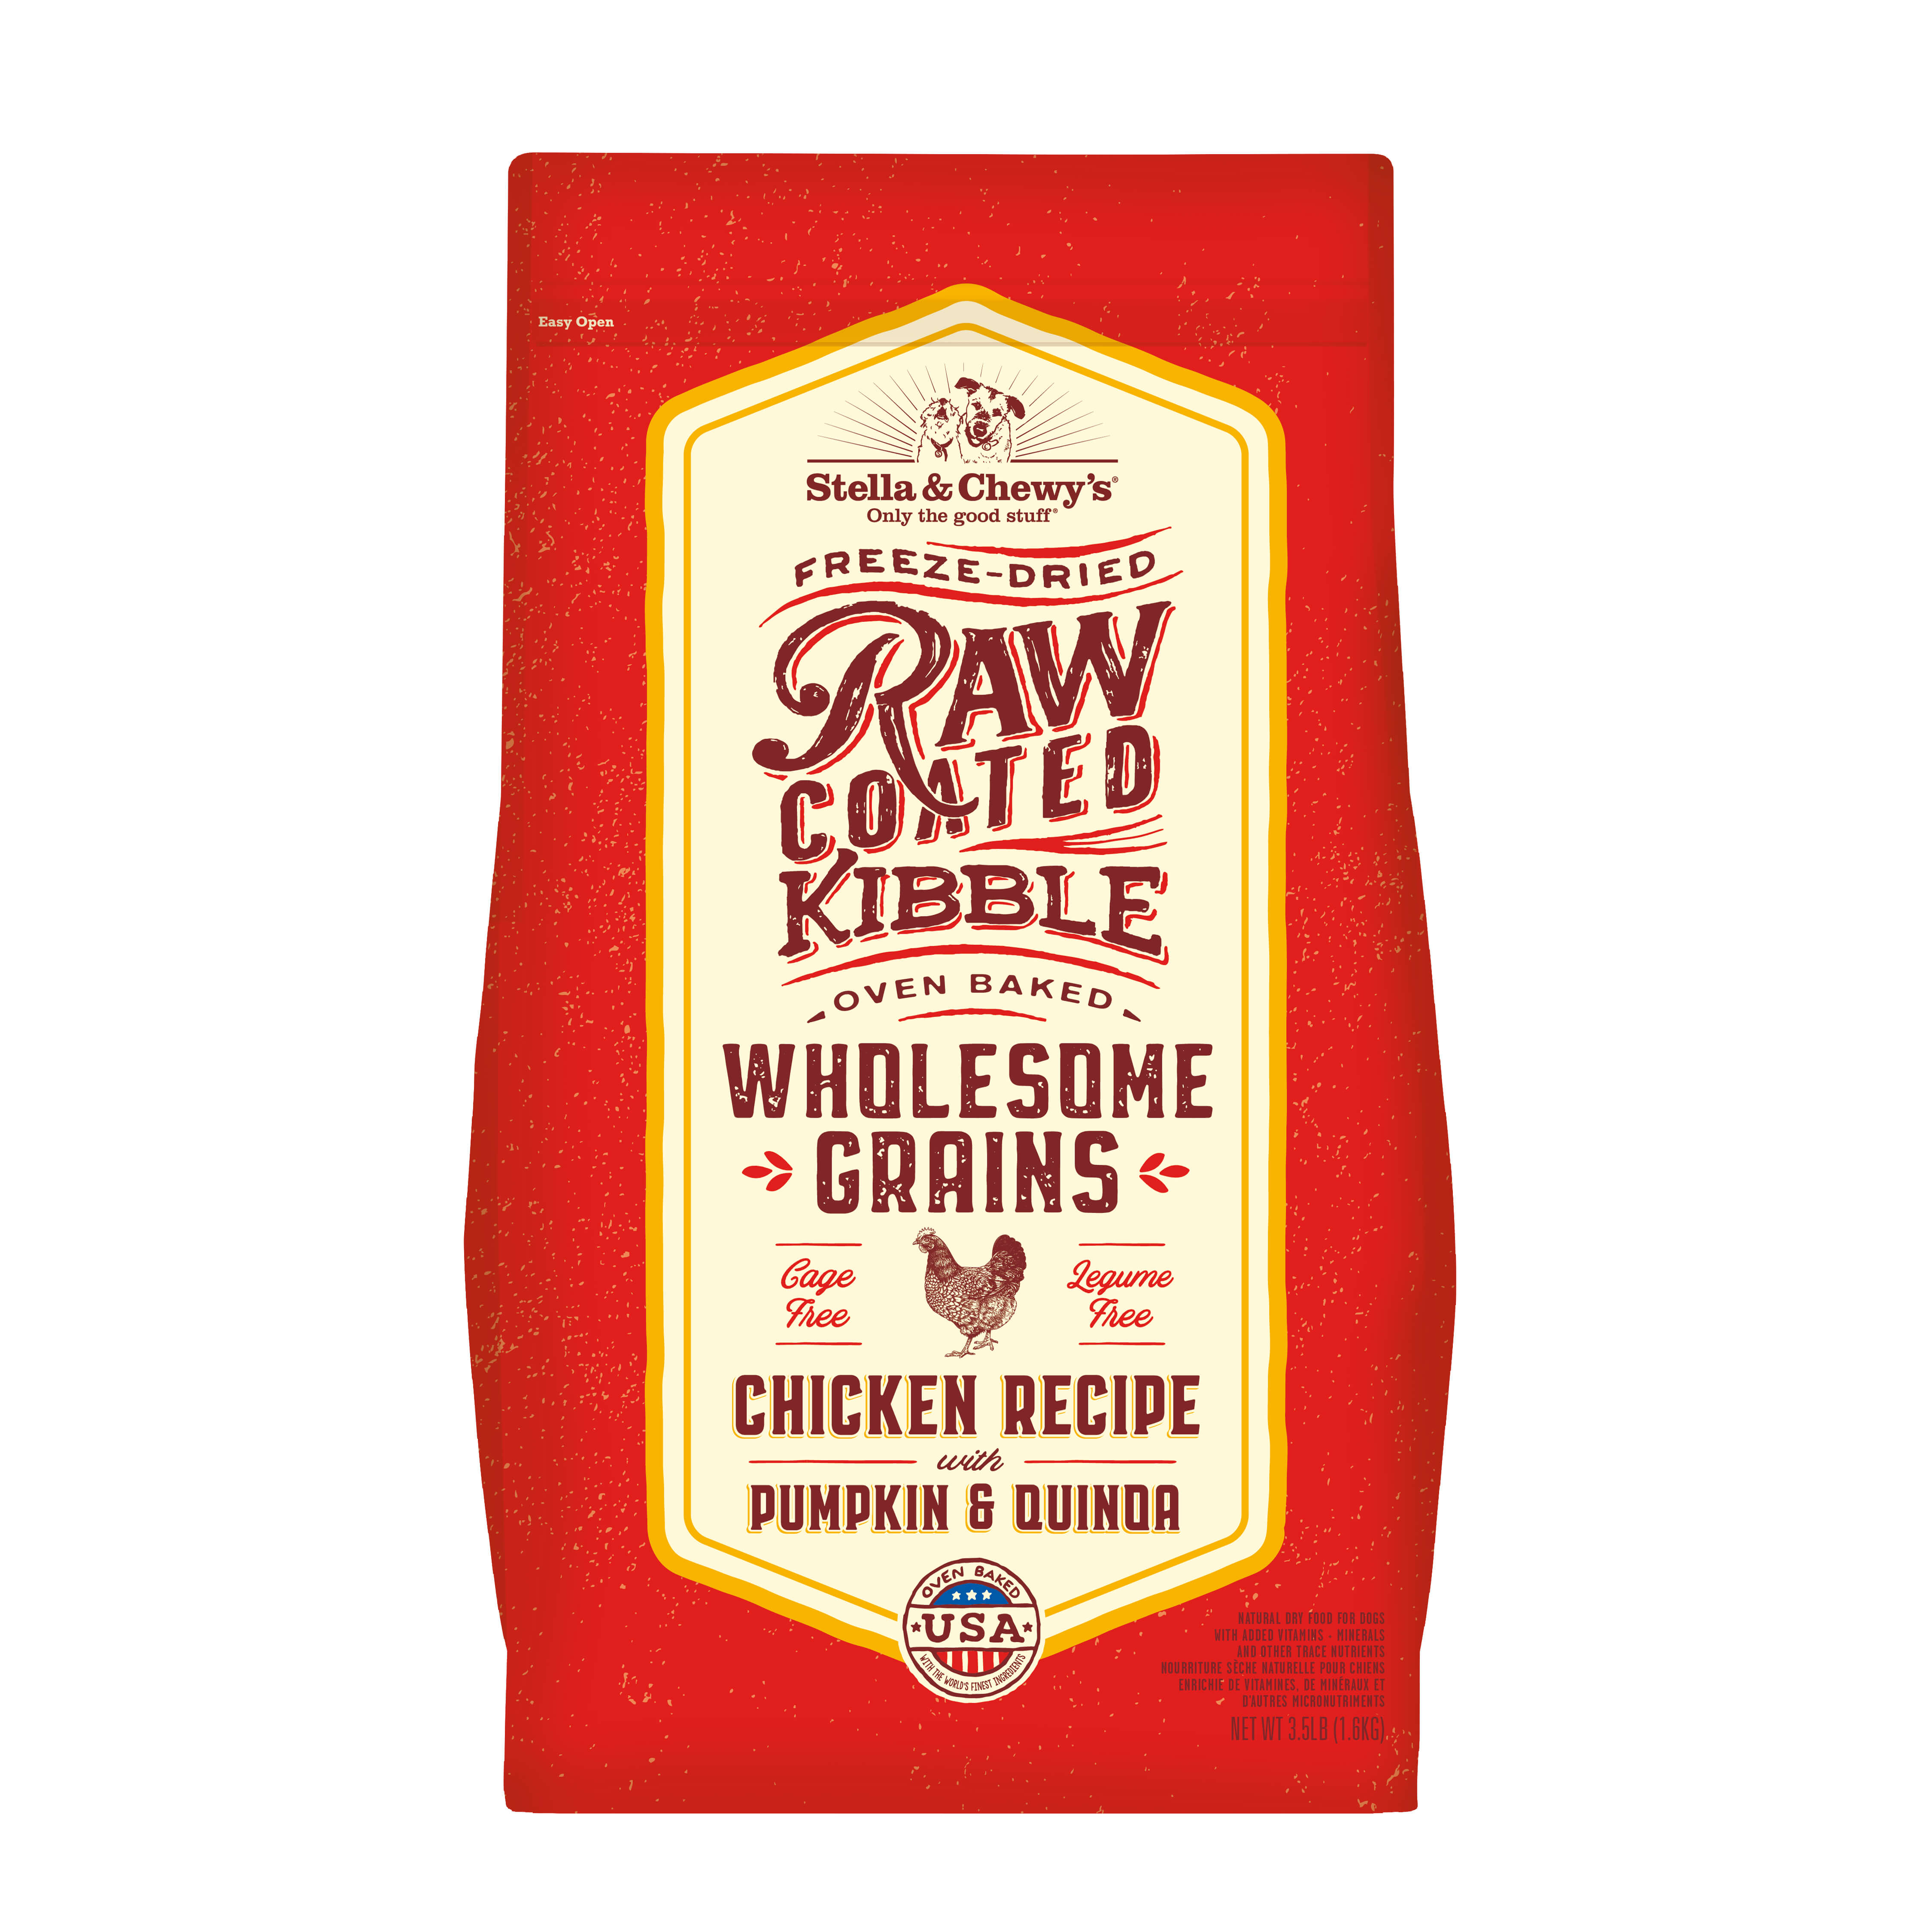 Stella & Chewy's Raw Coated Kibble with Wholesome Grains Chicken, Pumpkin & Quinoa Dry Dog Food, 3.5-lb